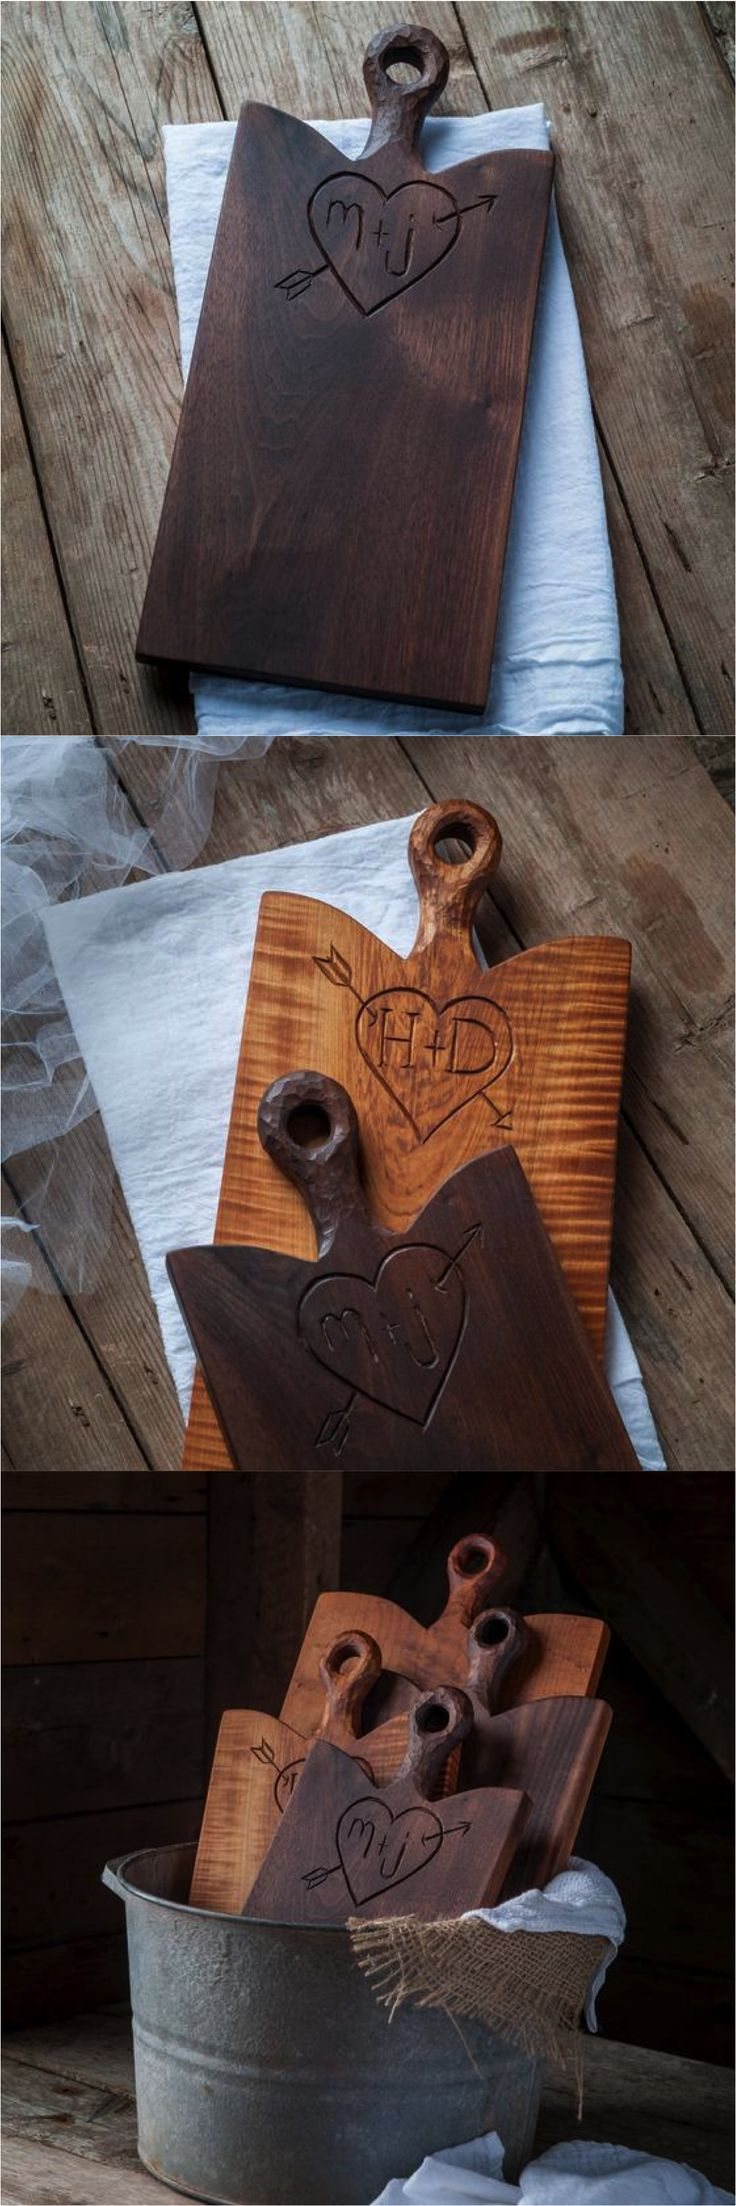 This stunning personalized serving board is the perfect gift for the wonderful couple celebrating a new home or wedding!   Made on Hatch.co by independent makers & designers